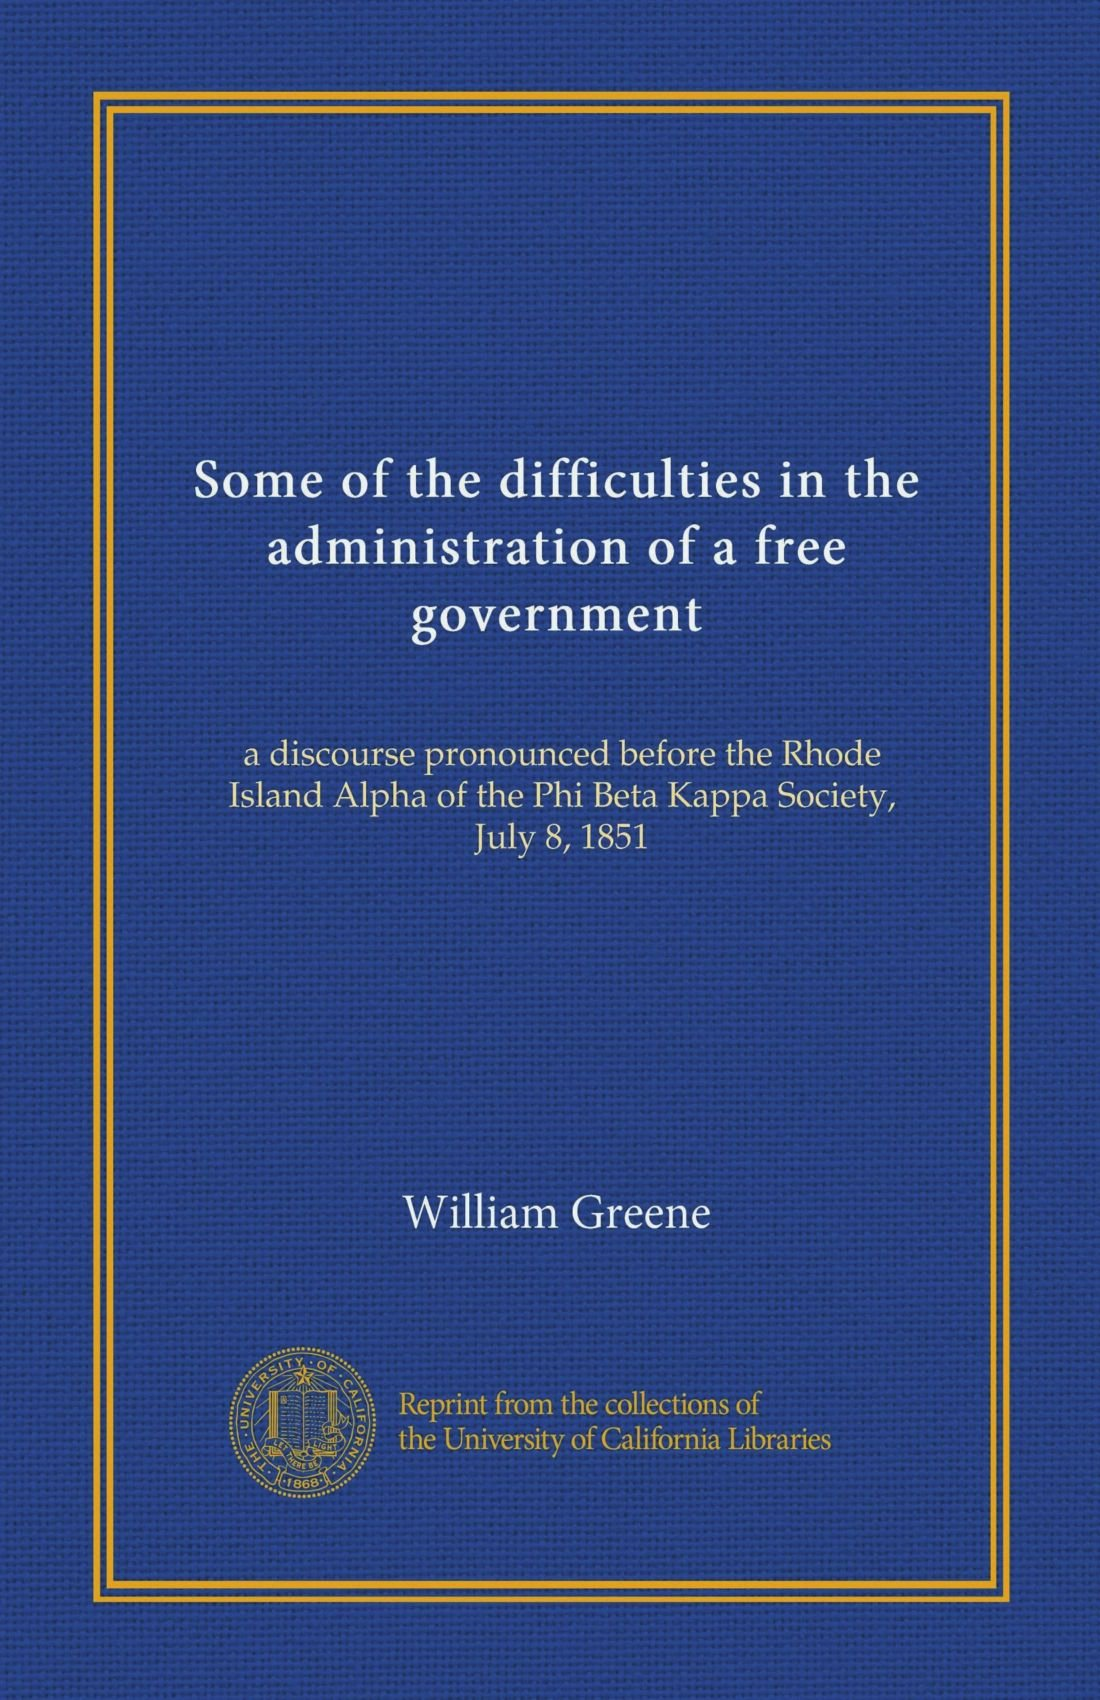 Some of the difficulties in the administration of a free government: a discourse pronounced before the Rhode Island Alpha of the Phi Beta Kappa Society, July 8, 1851 PDF